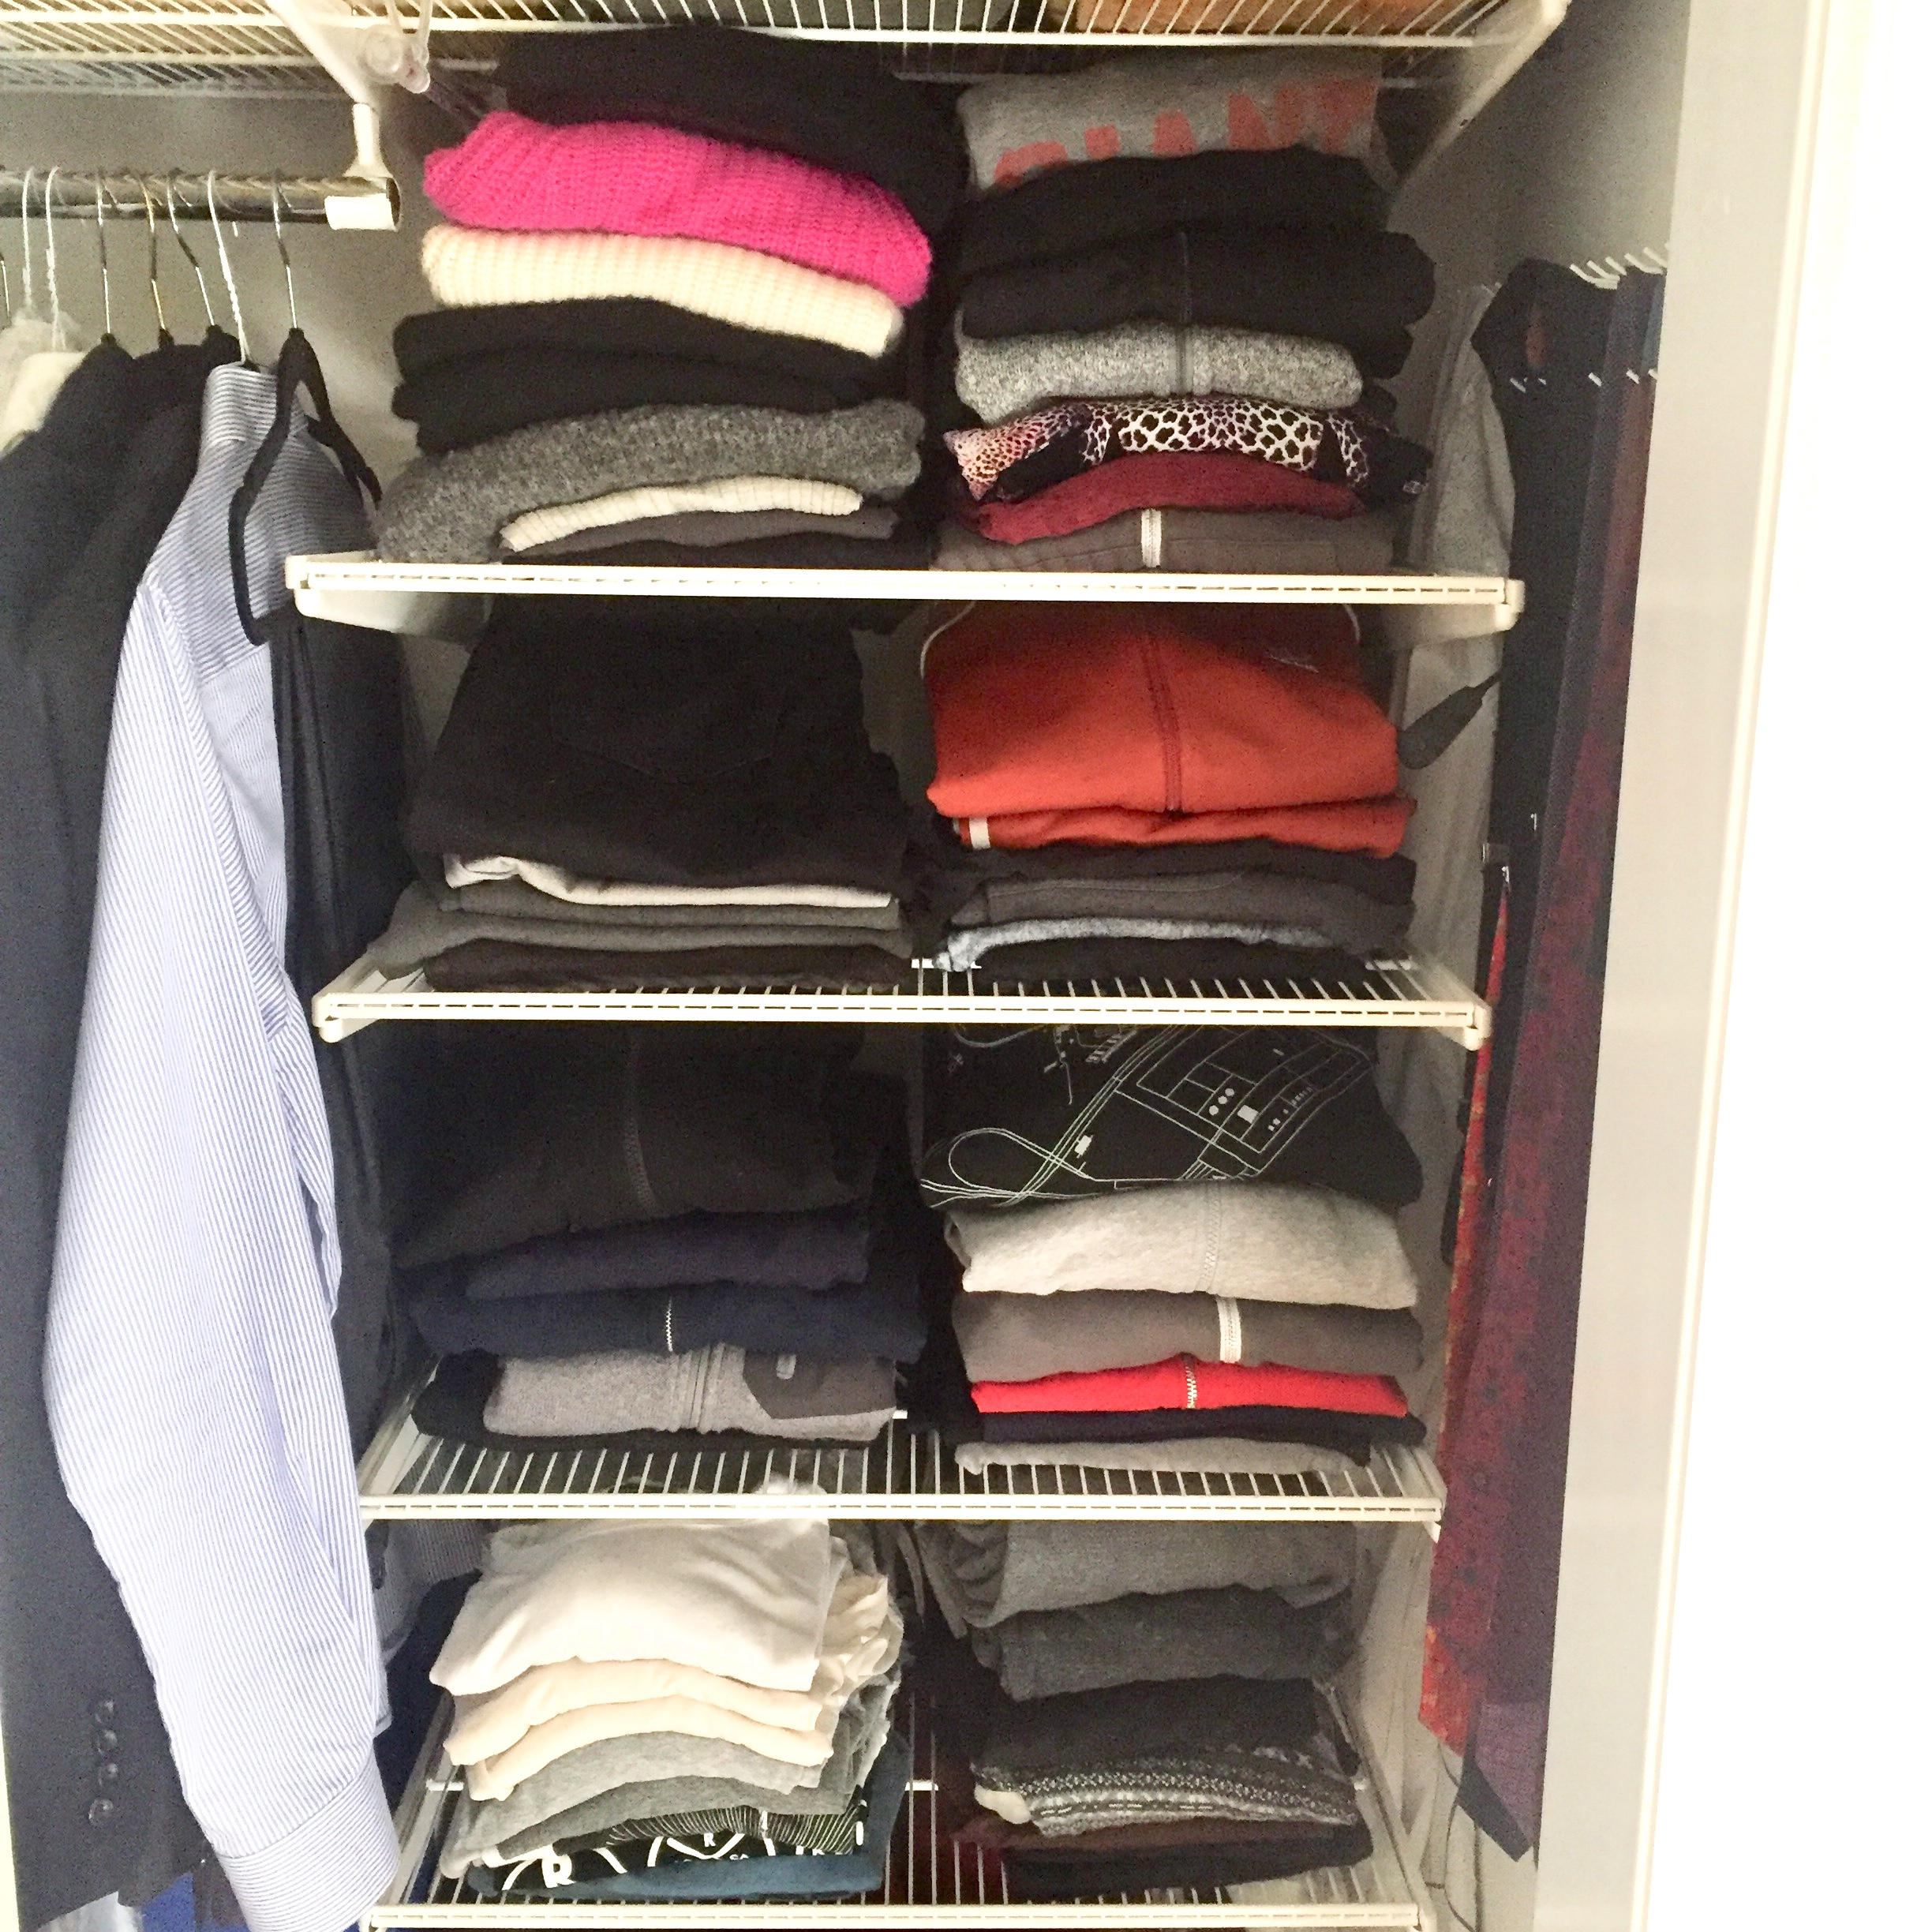 Custom Built-Ins - If you're lucky enough to design the inside of your closet from scratch, Elfa closets work wonderfully! You can customize the shelves/drawers/hanging rods and pick your own adventure.